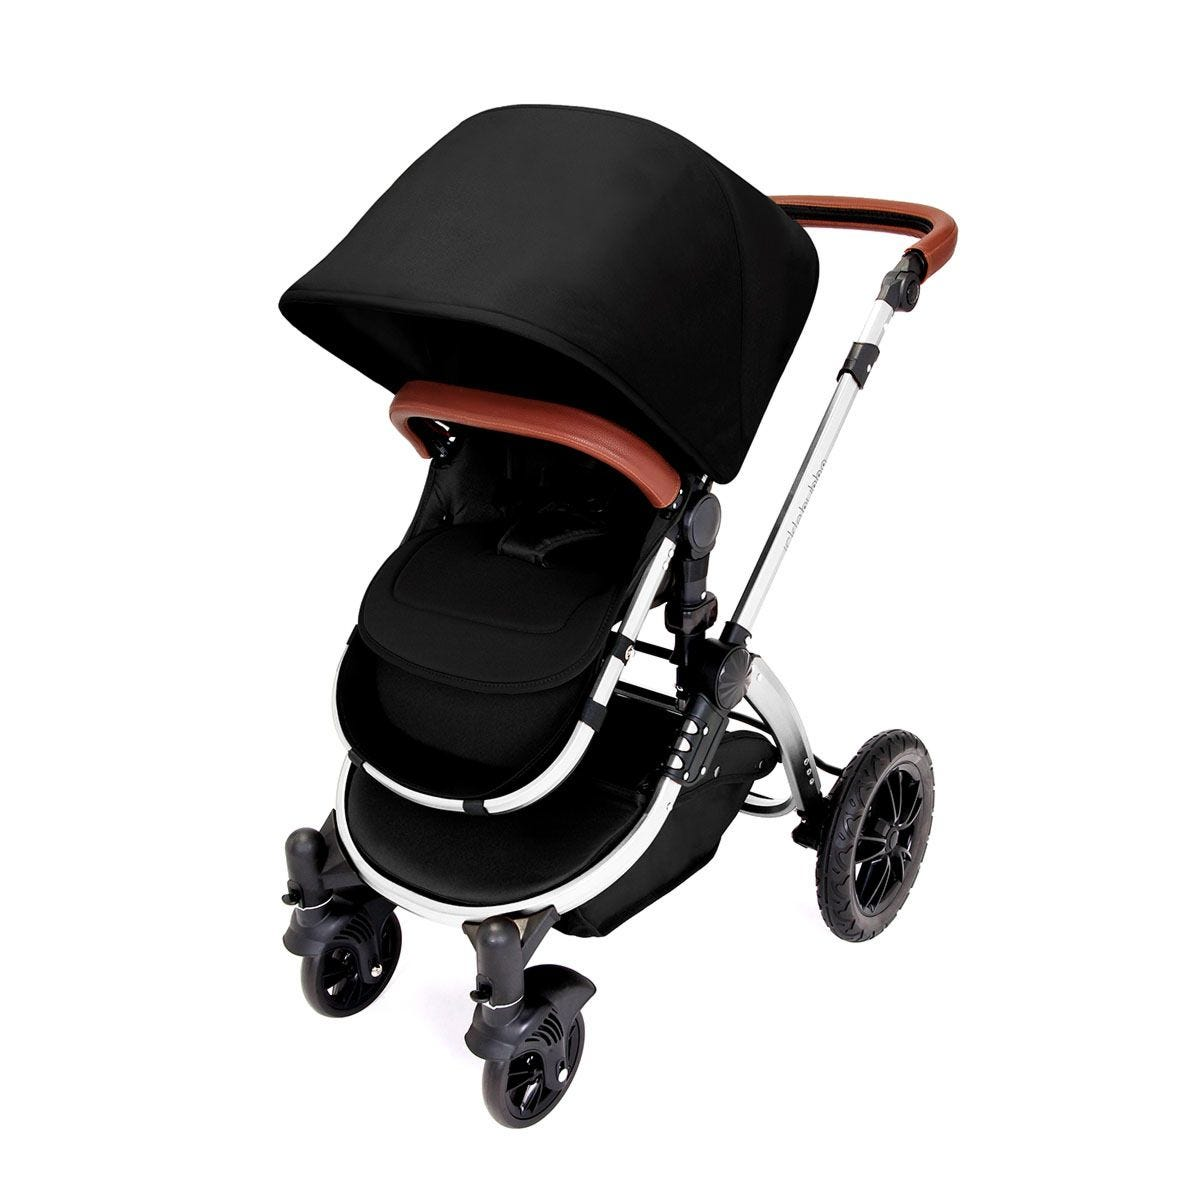 Ickle Bubba Stomp V4 2 in 1 Pushchair - Midnight on Chrome with Tan Handles